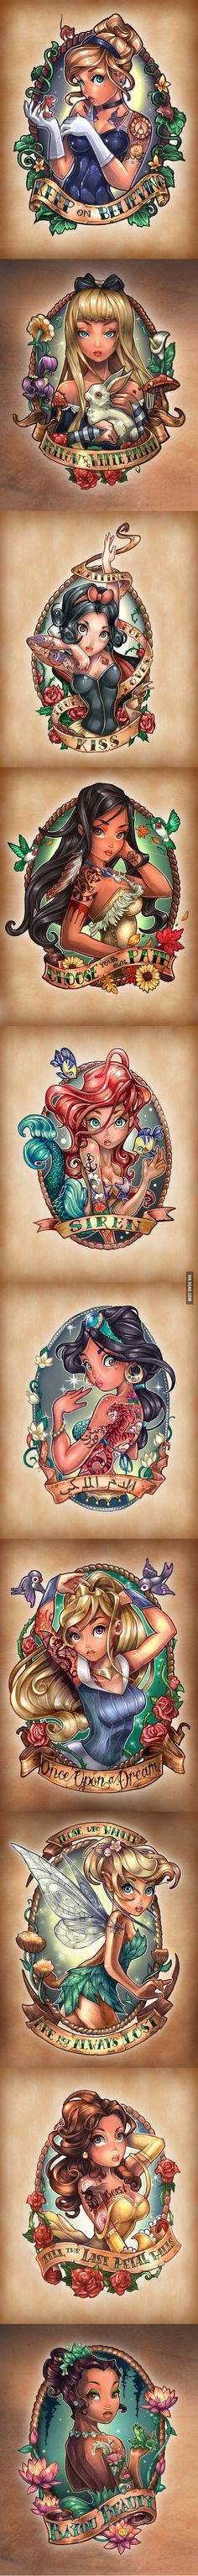 Disney-Princesses-As-Fierce-Vintage-Tattooed-Pin-Ups-fun,funny,lol,meme,humor,amusing,laugh,picture,video,movie,girl,comic